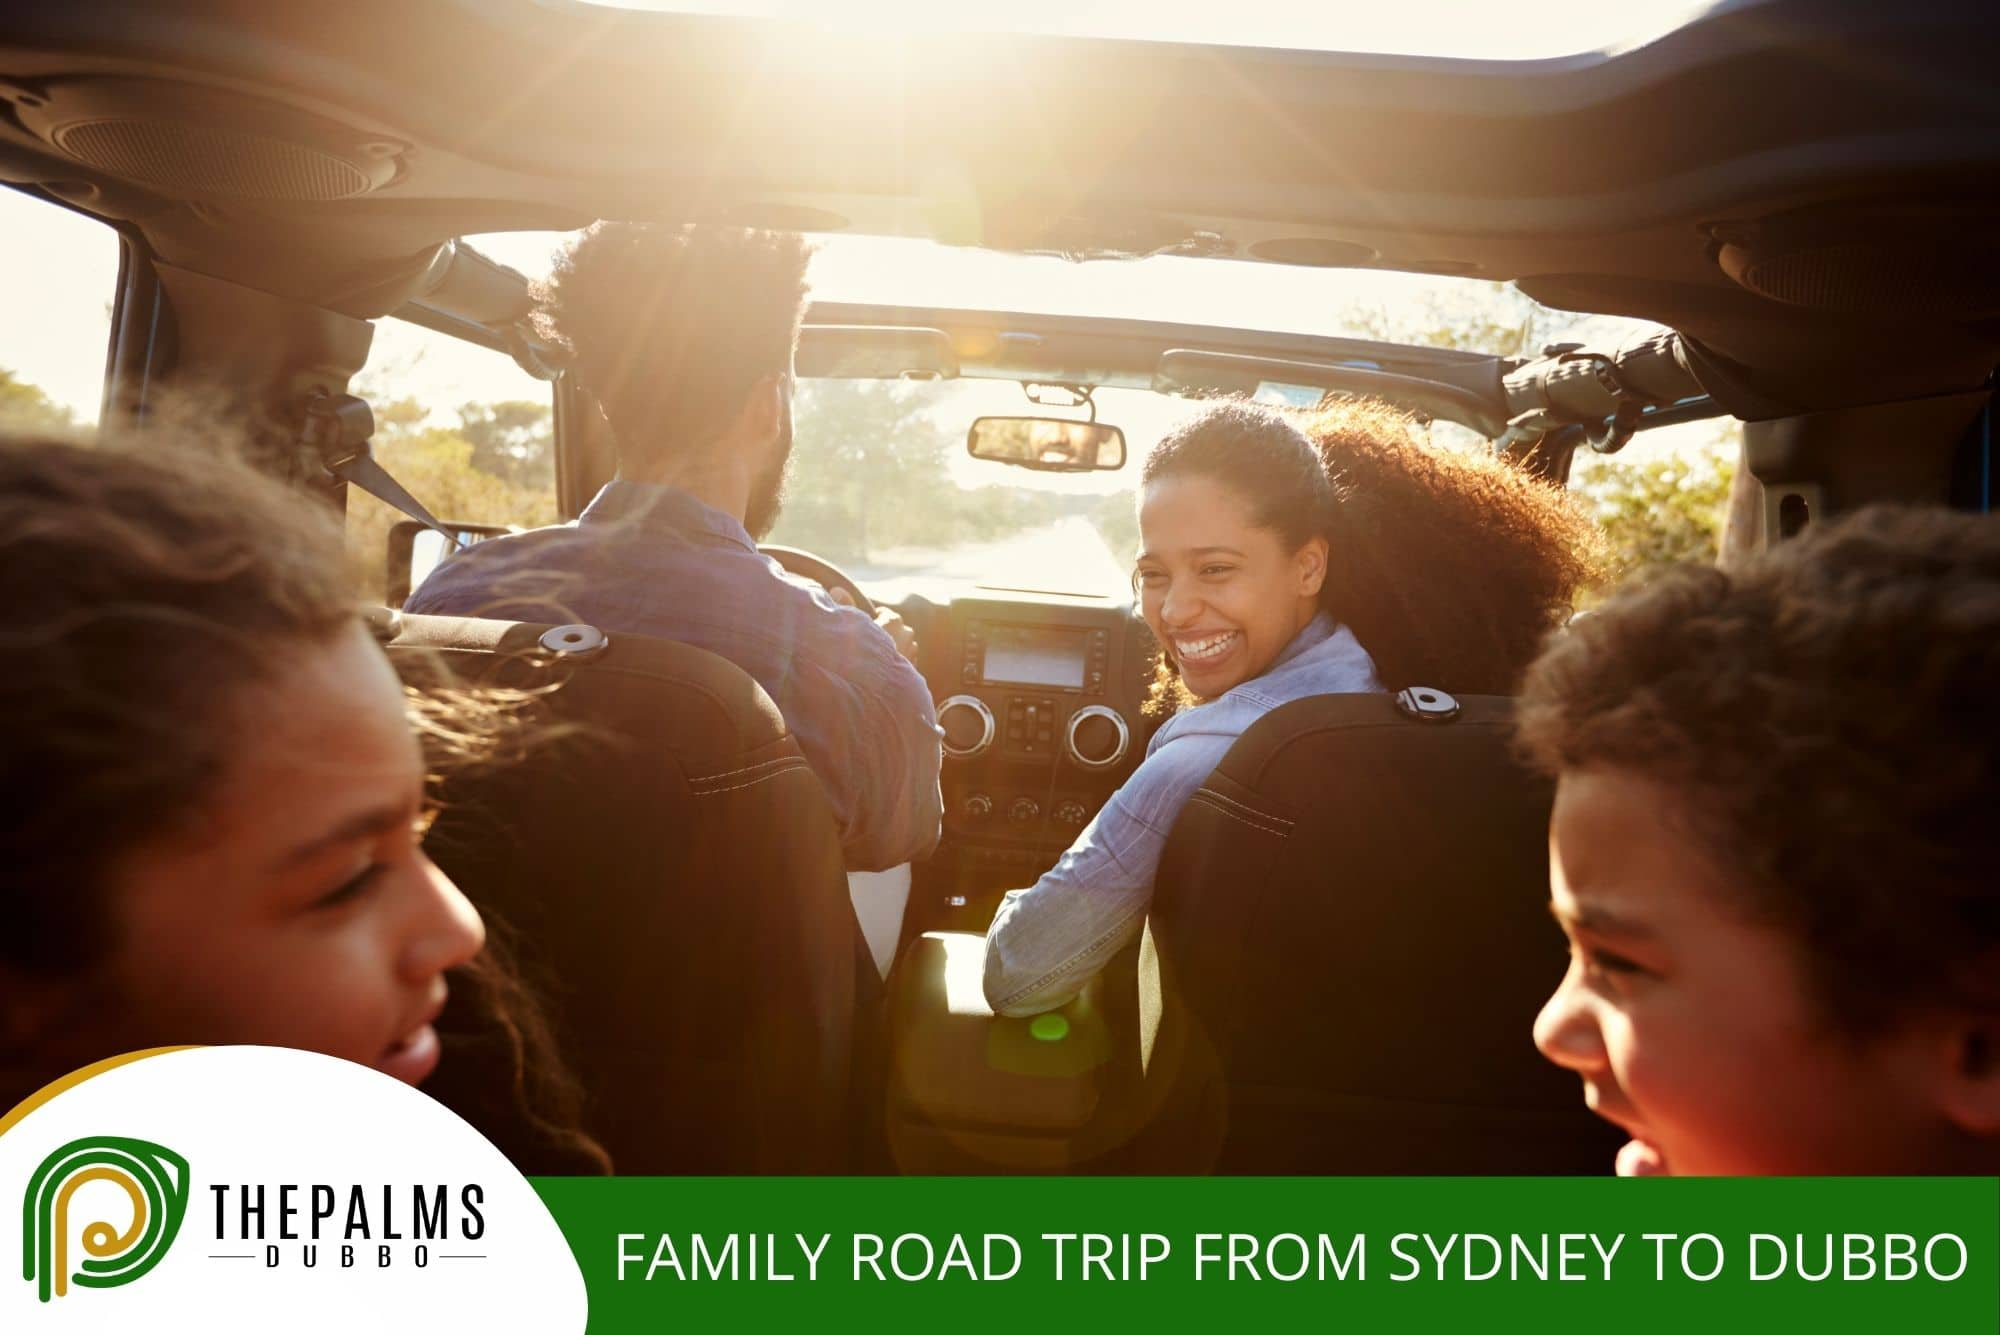 Family Road Trip from Sydney to Dubbo